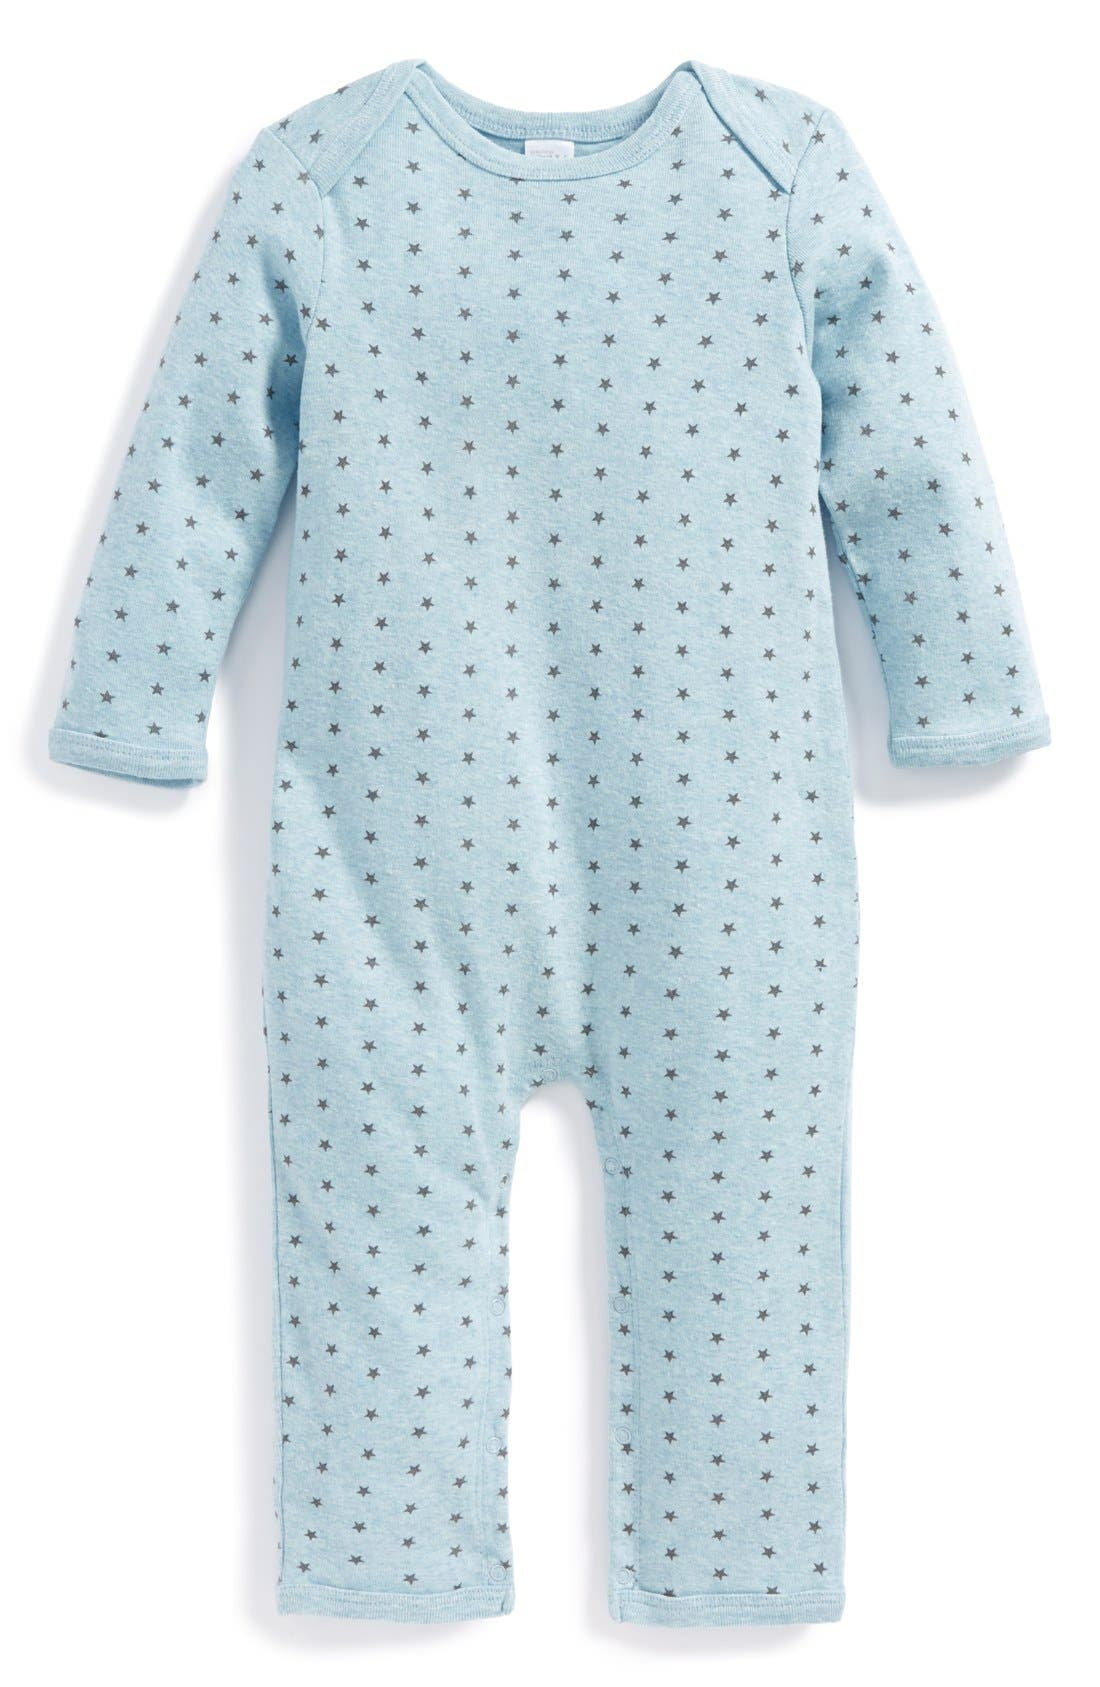 Alternate Image 1 Selected - Nordstrom Baby Print Romper (Baby)